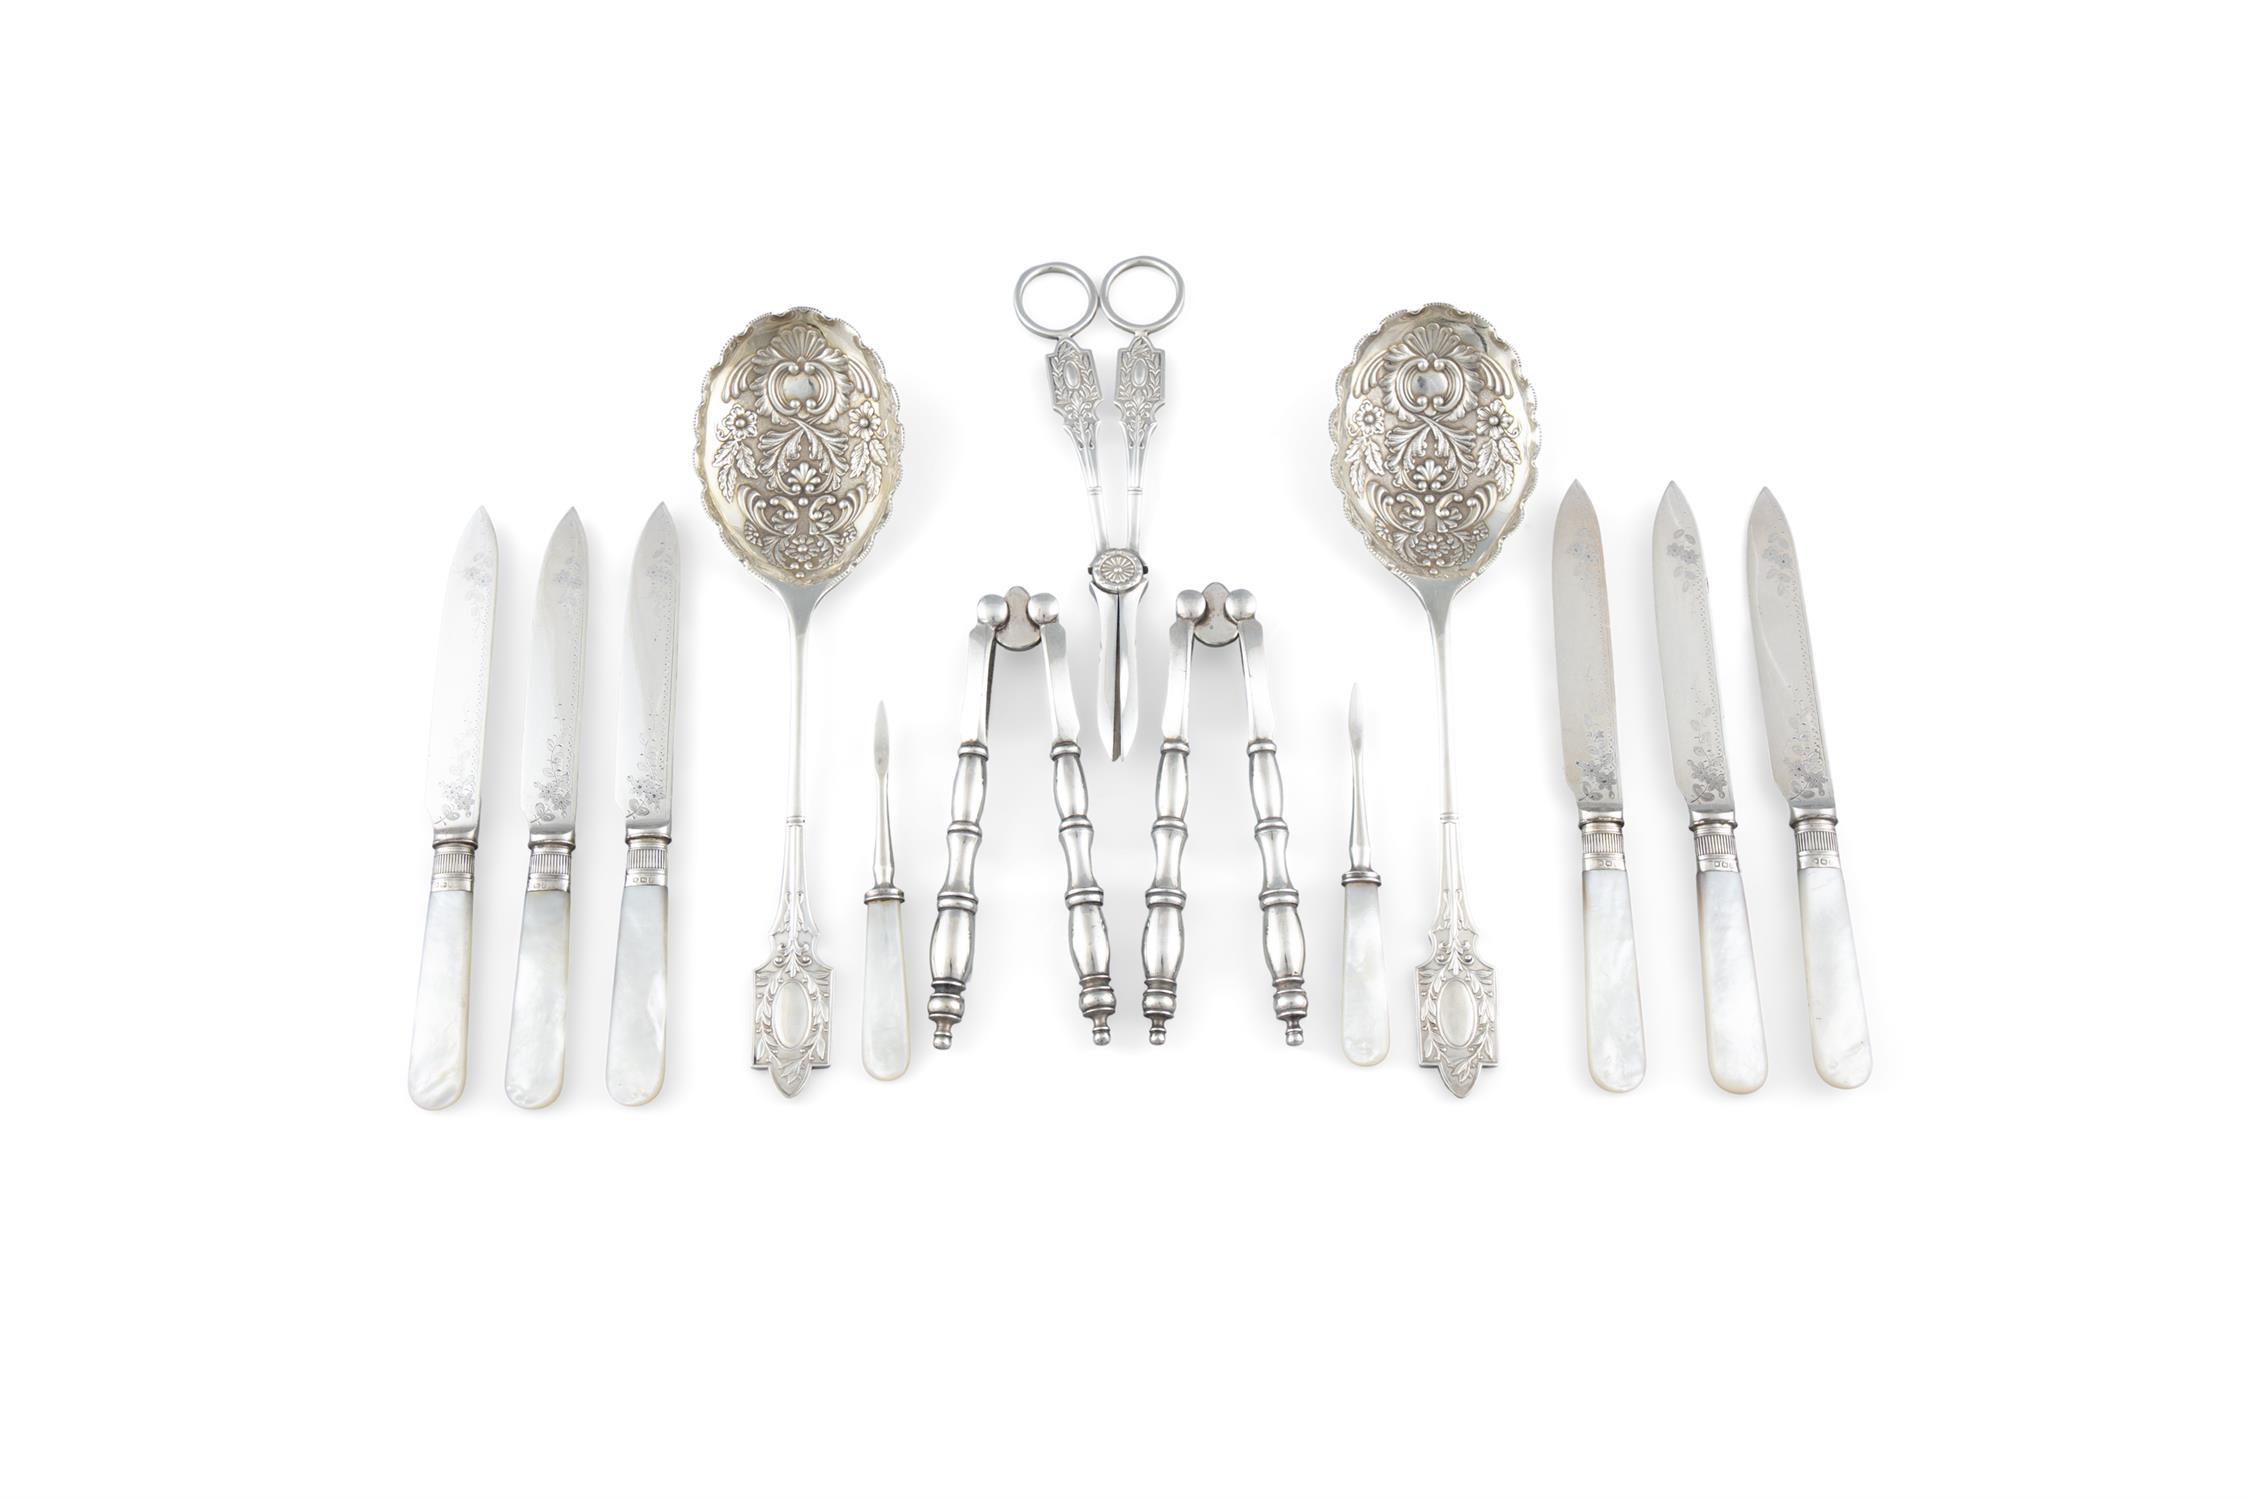 A VICTORIAN SILVER PLATED FRUIT AND NUT SERVING SET, in fitted case - Image 2 of 3